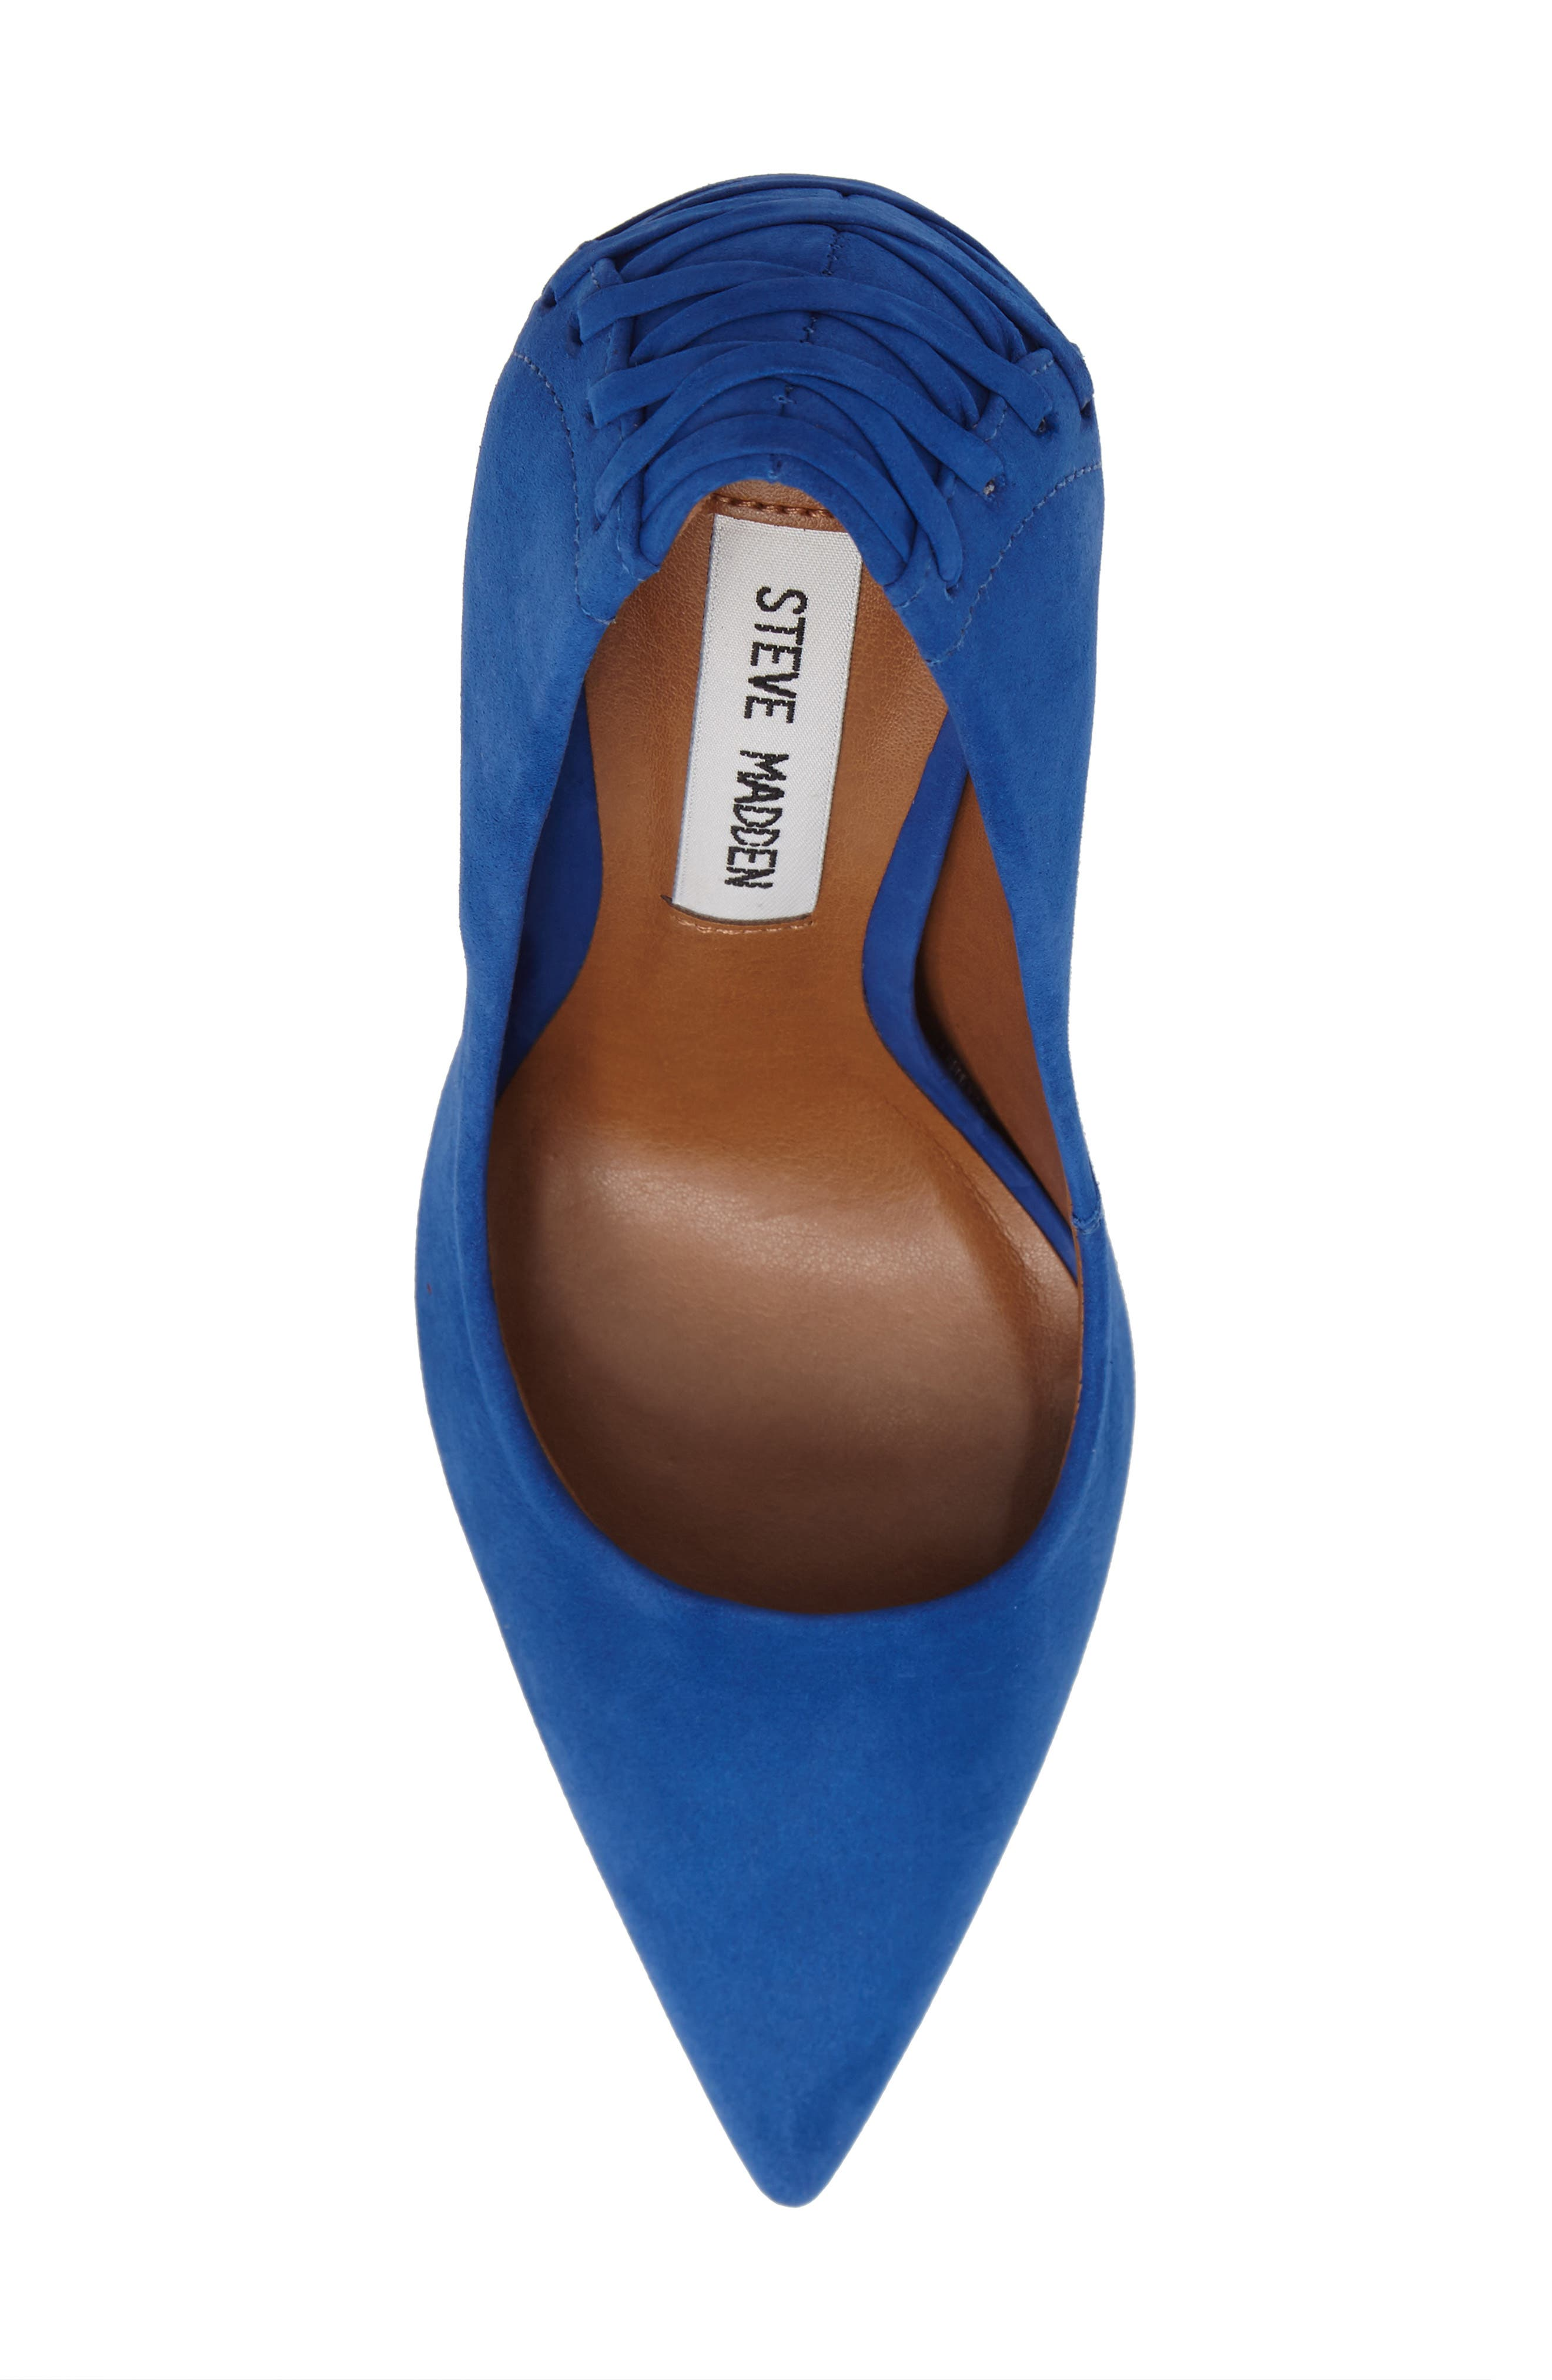 Paiton Laced Heel Pump,                             Alternate thumbnail 5, color,                             Blue Nubuck